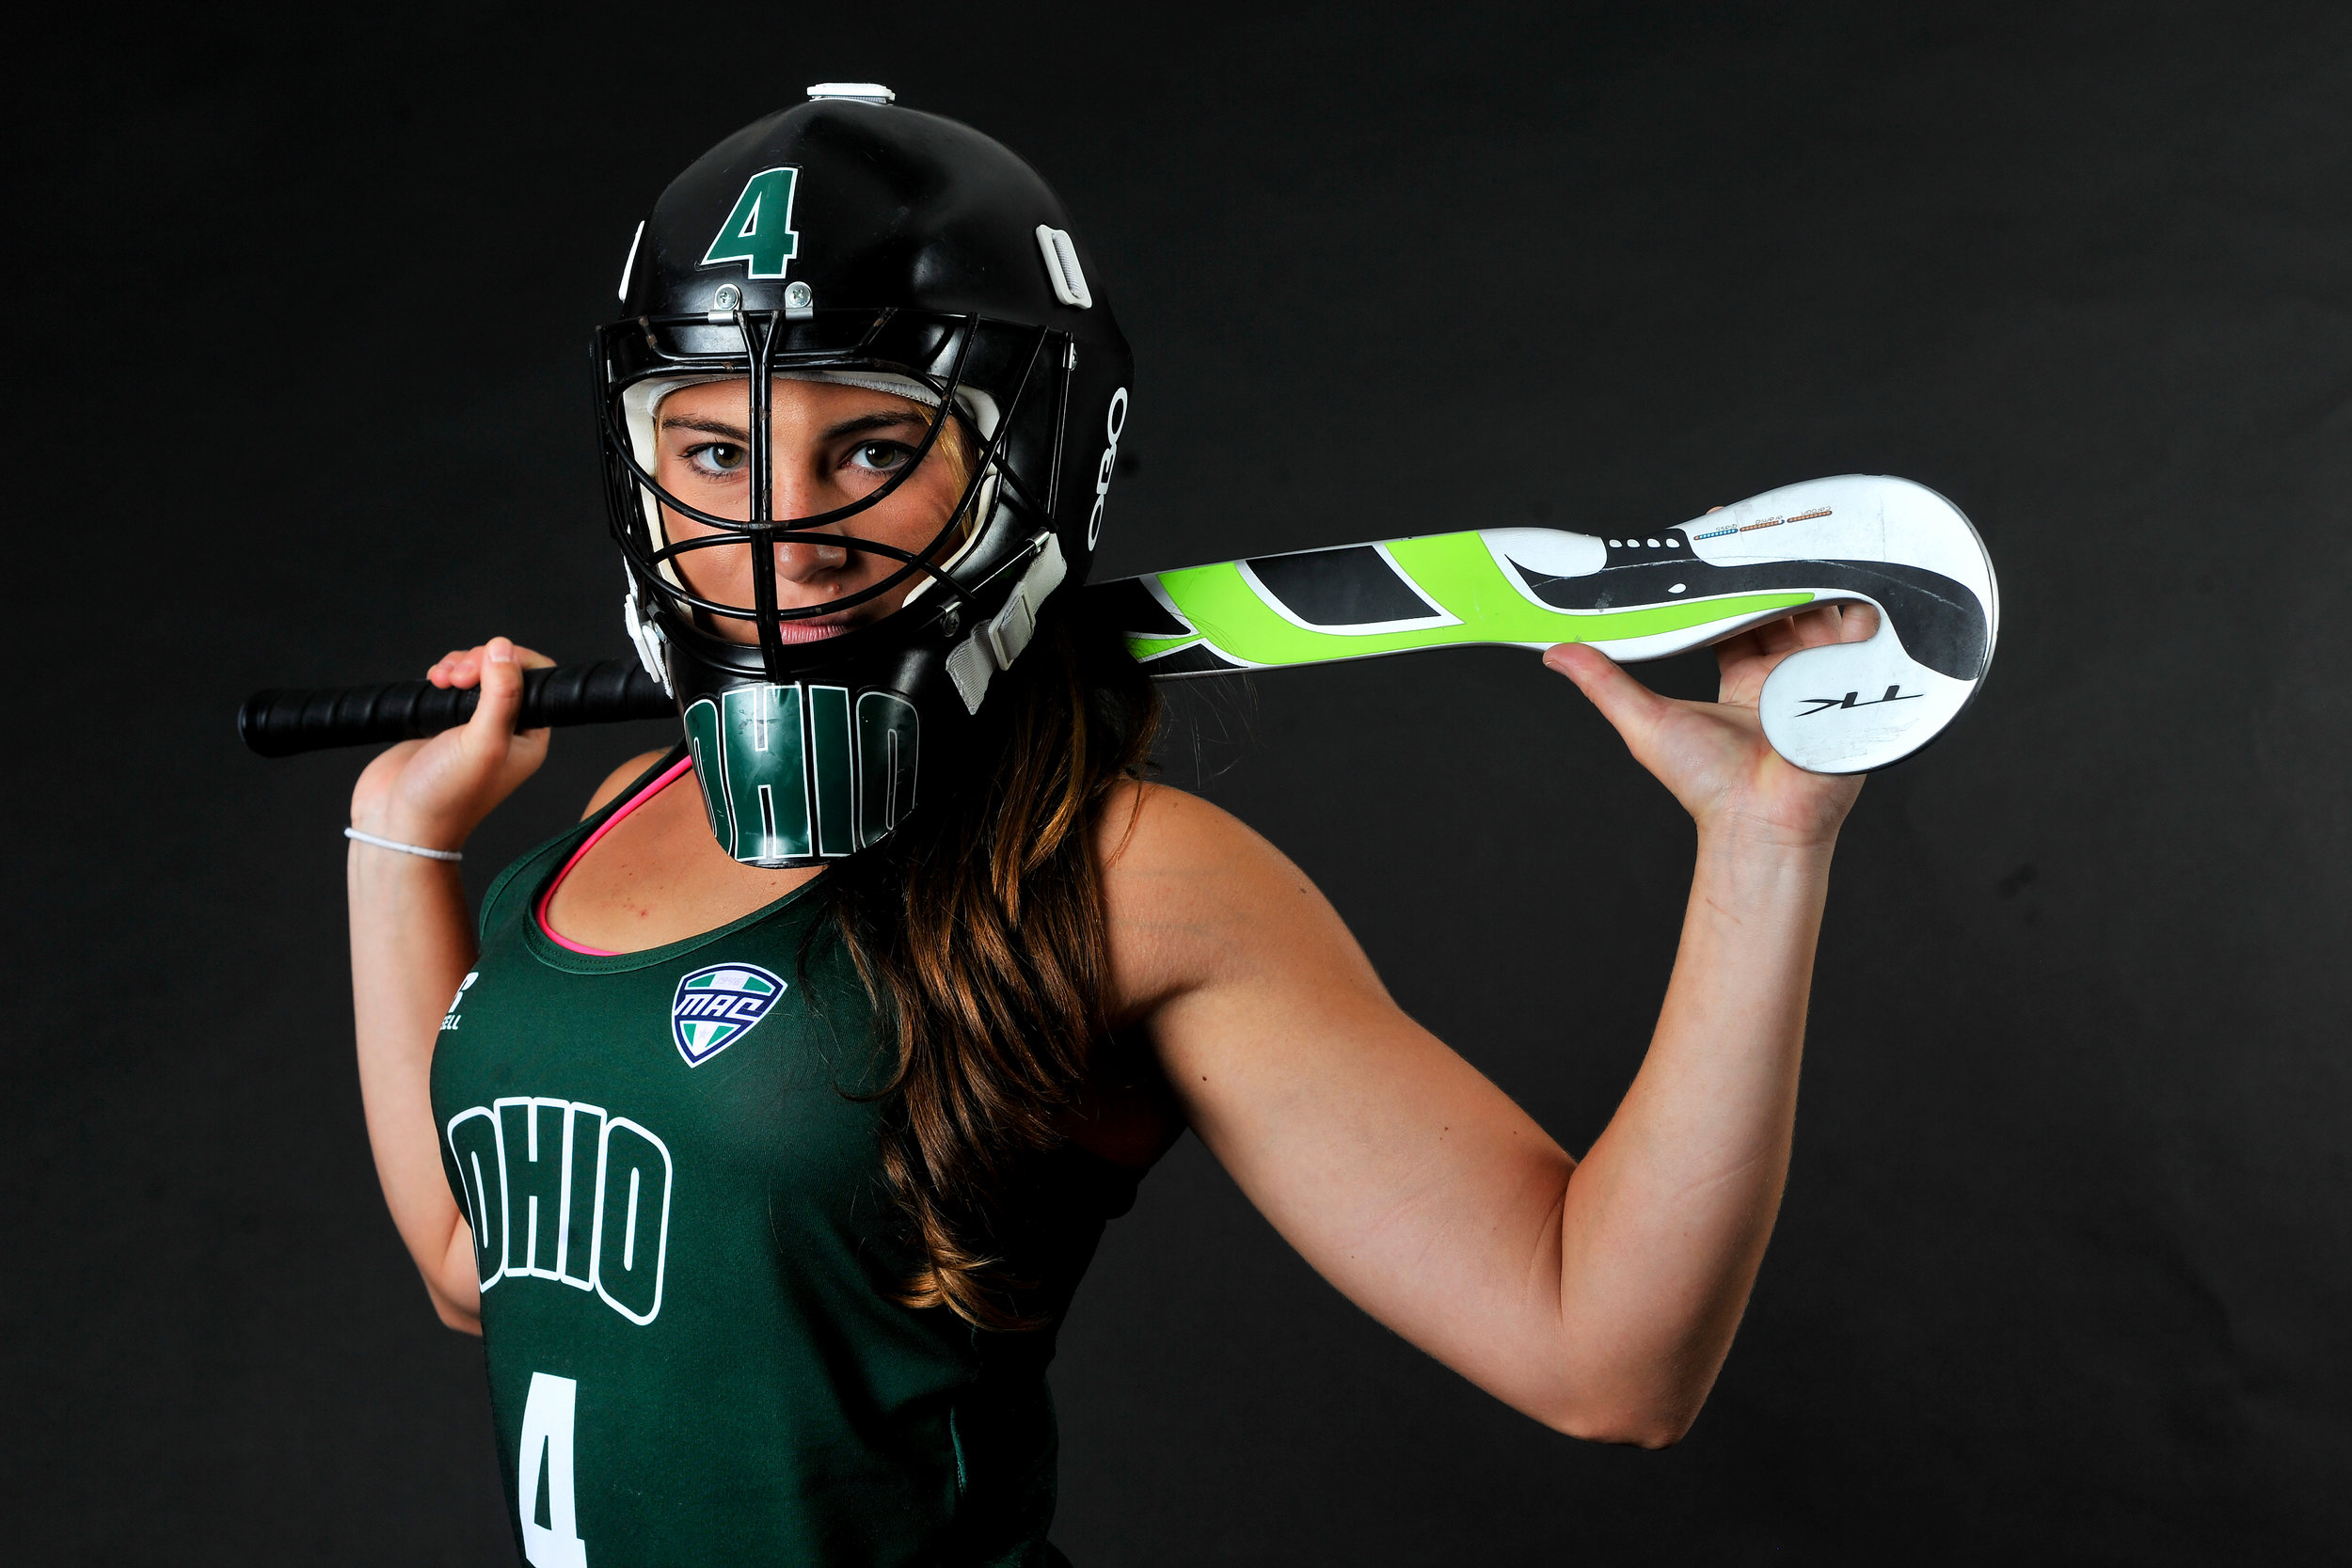 Senior goalkeeper Lina Trucco of Lake Bluff, Ill., poses for a portrait during Ohio Women's Field Hockey photo day on August 22, 2016. (Sarah Stier | Ohio Athletics)